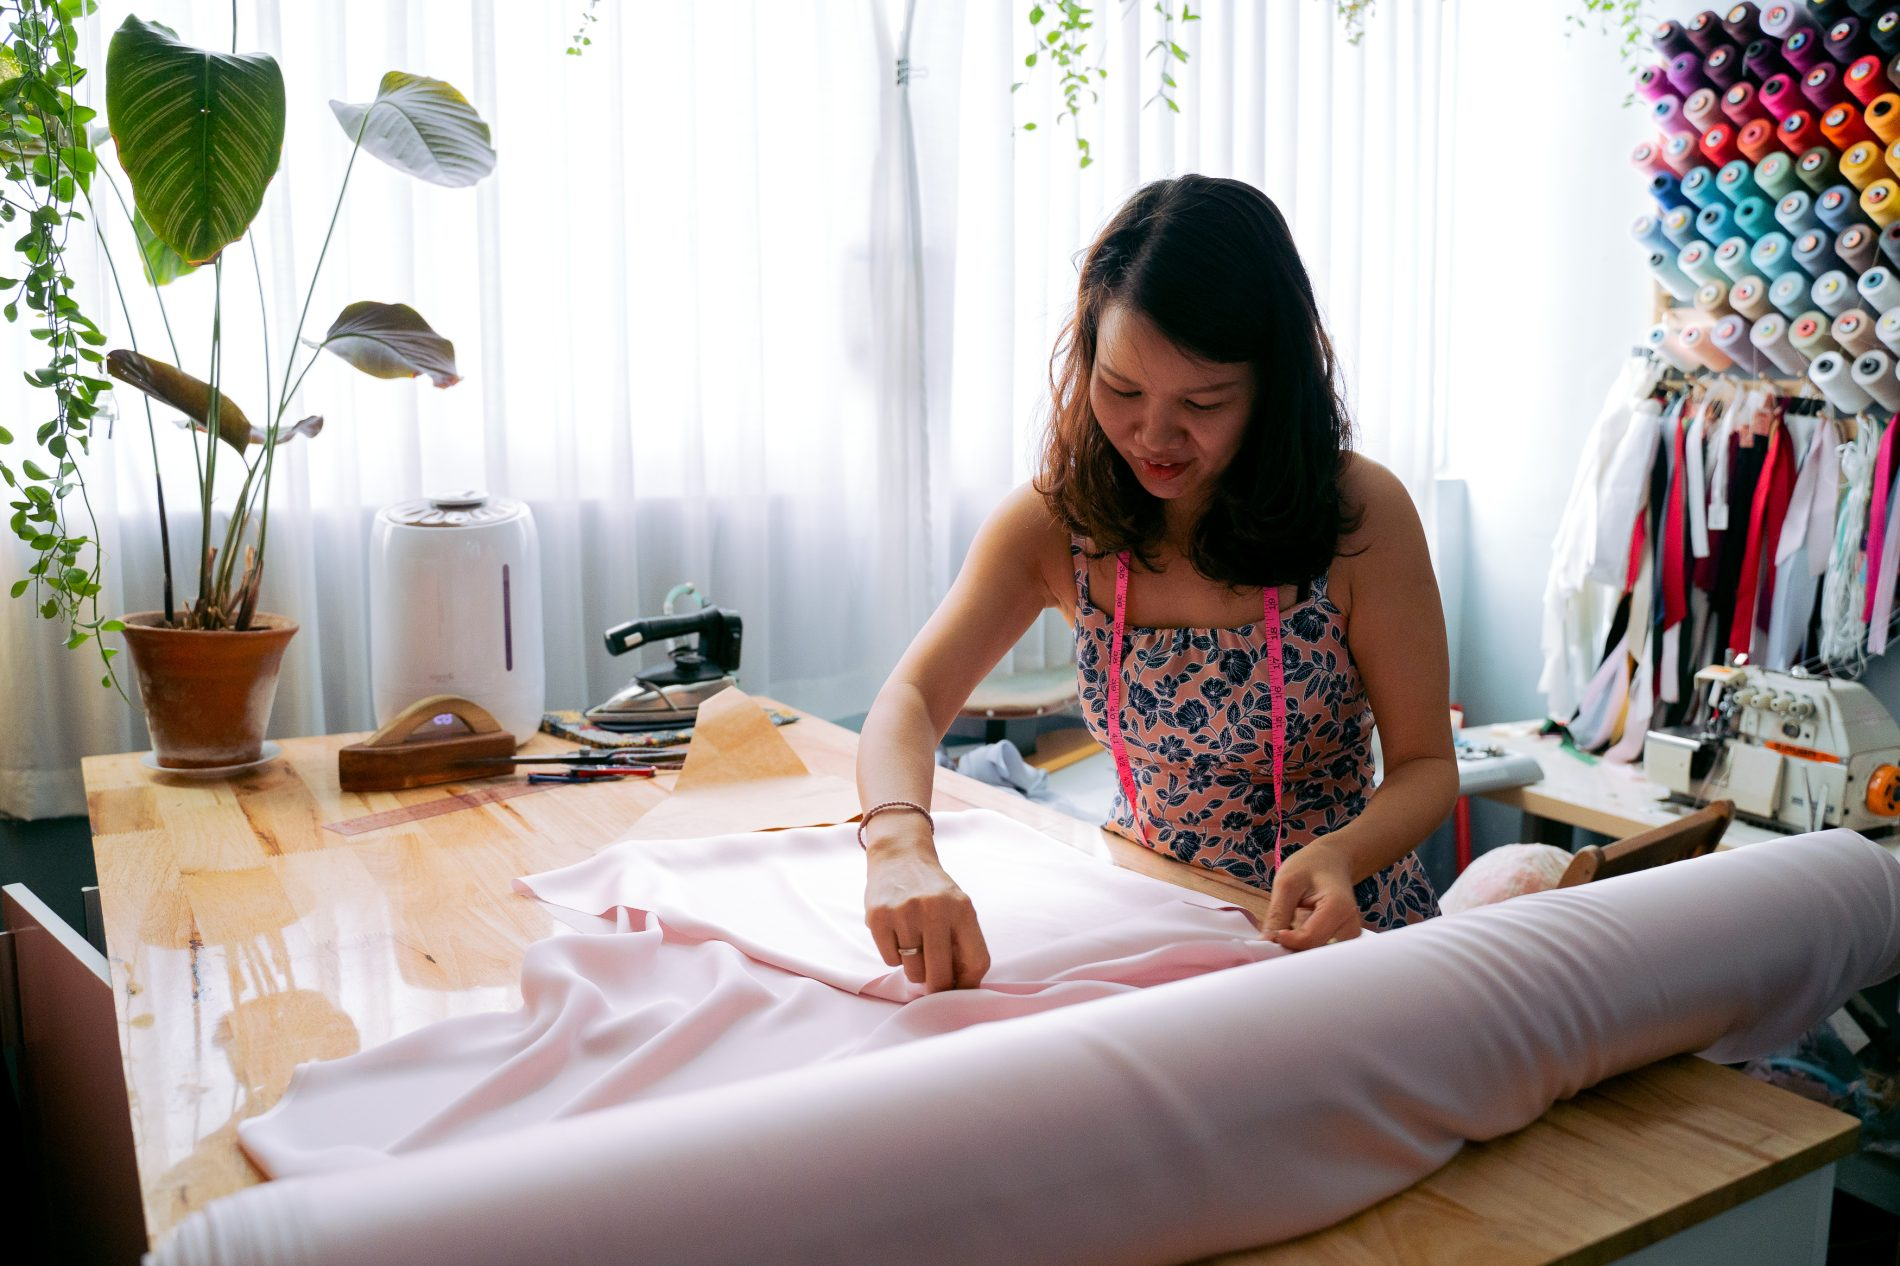 A woman holding a fabric